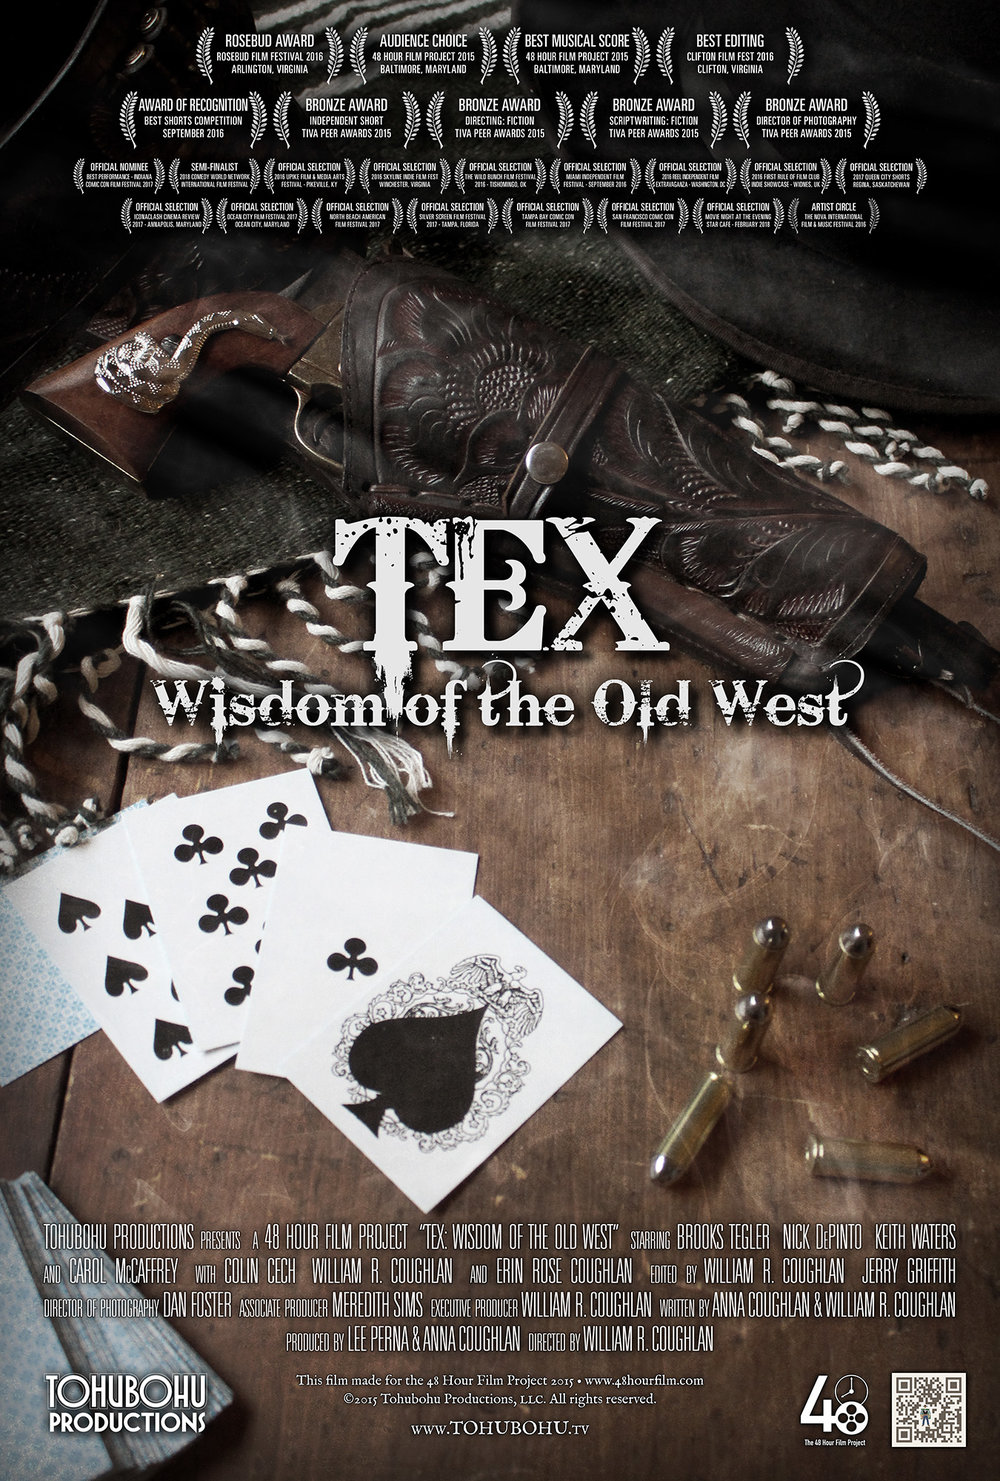 "Tex: Wisdom of the Old West - 2015 · 6:51 · written by Anna Coughlan & William R. Coughlan · produced by Lee Perna & Anna Coughlan · directed by William R. CoughlanQuentin has a problem: one of his neighbors is gradually taking over the community garden, pushing everyone else out and consolidating her claim. His friend Brent is pushing him to confront the offender, but Quentin seeks the wisdom of Tex — a genuine Old West gunslinger who just happens to find himself in the modern era.Tohubohu — now equipped with a largely portable postproduction setup — competed for the first time in the Baltimore 48 Hour Film Project with ""Tex"" — a comedic modern interpretation of the classic western. The film was created entirely between June 12th through the 14th, 2015, and premiered at the Charles Theatre on Tuesday, June 23rd, earning both an Audience Choice Award and Best Musical Score recognition."